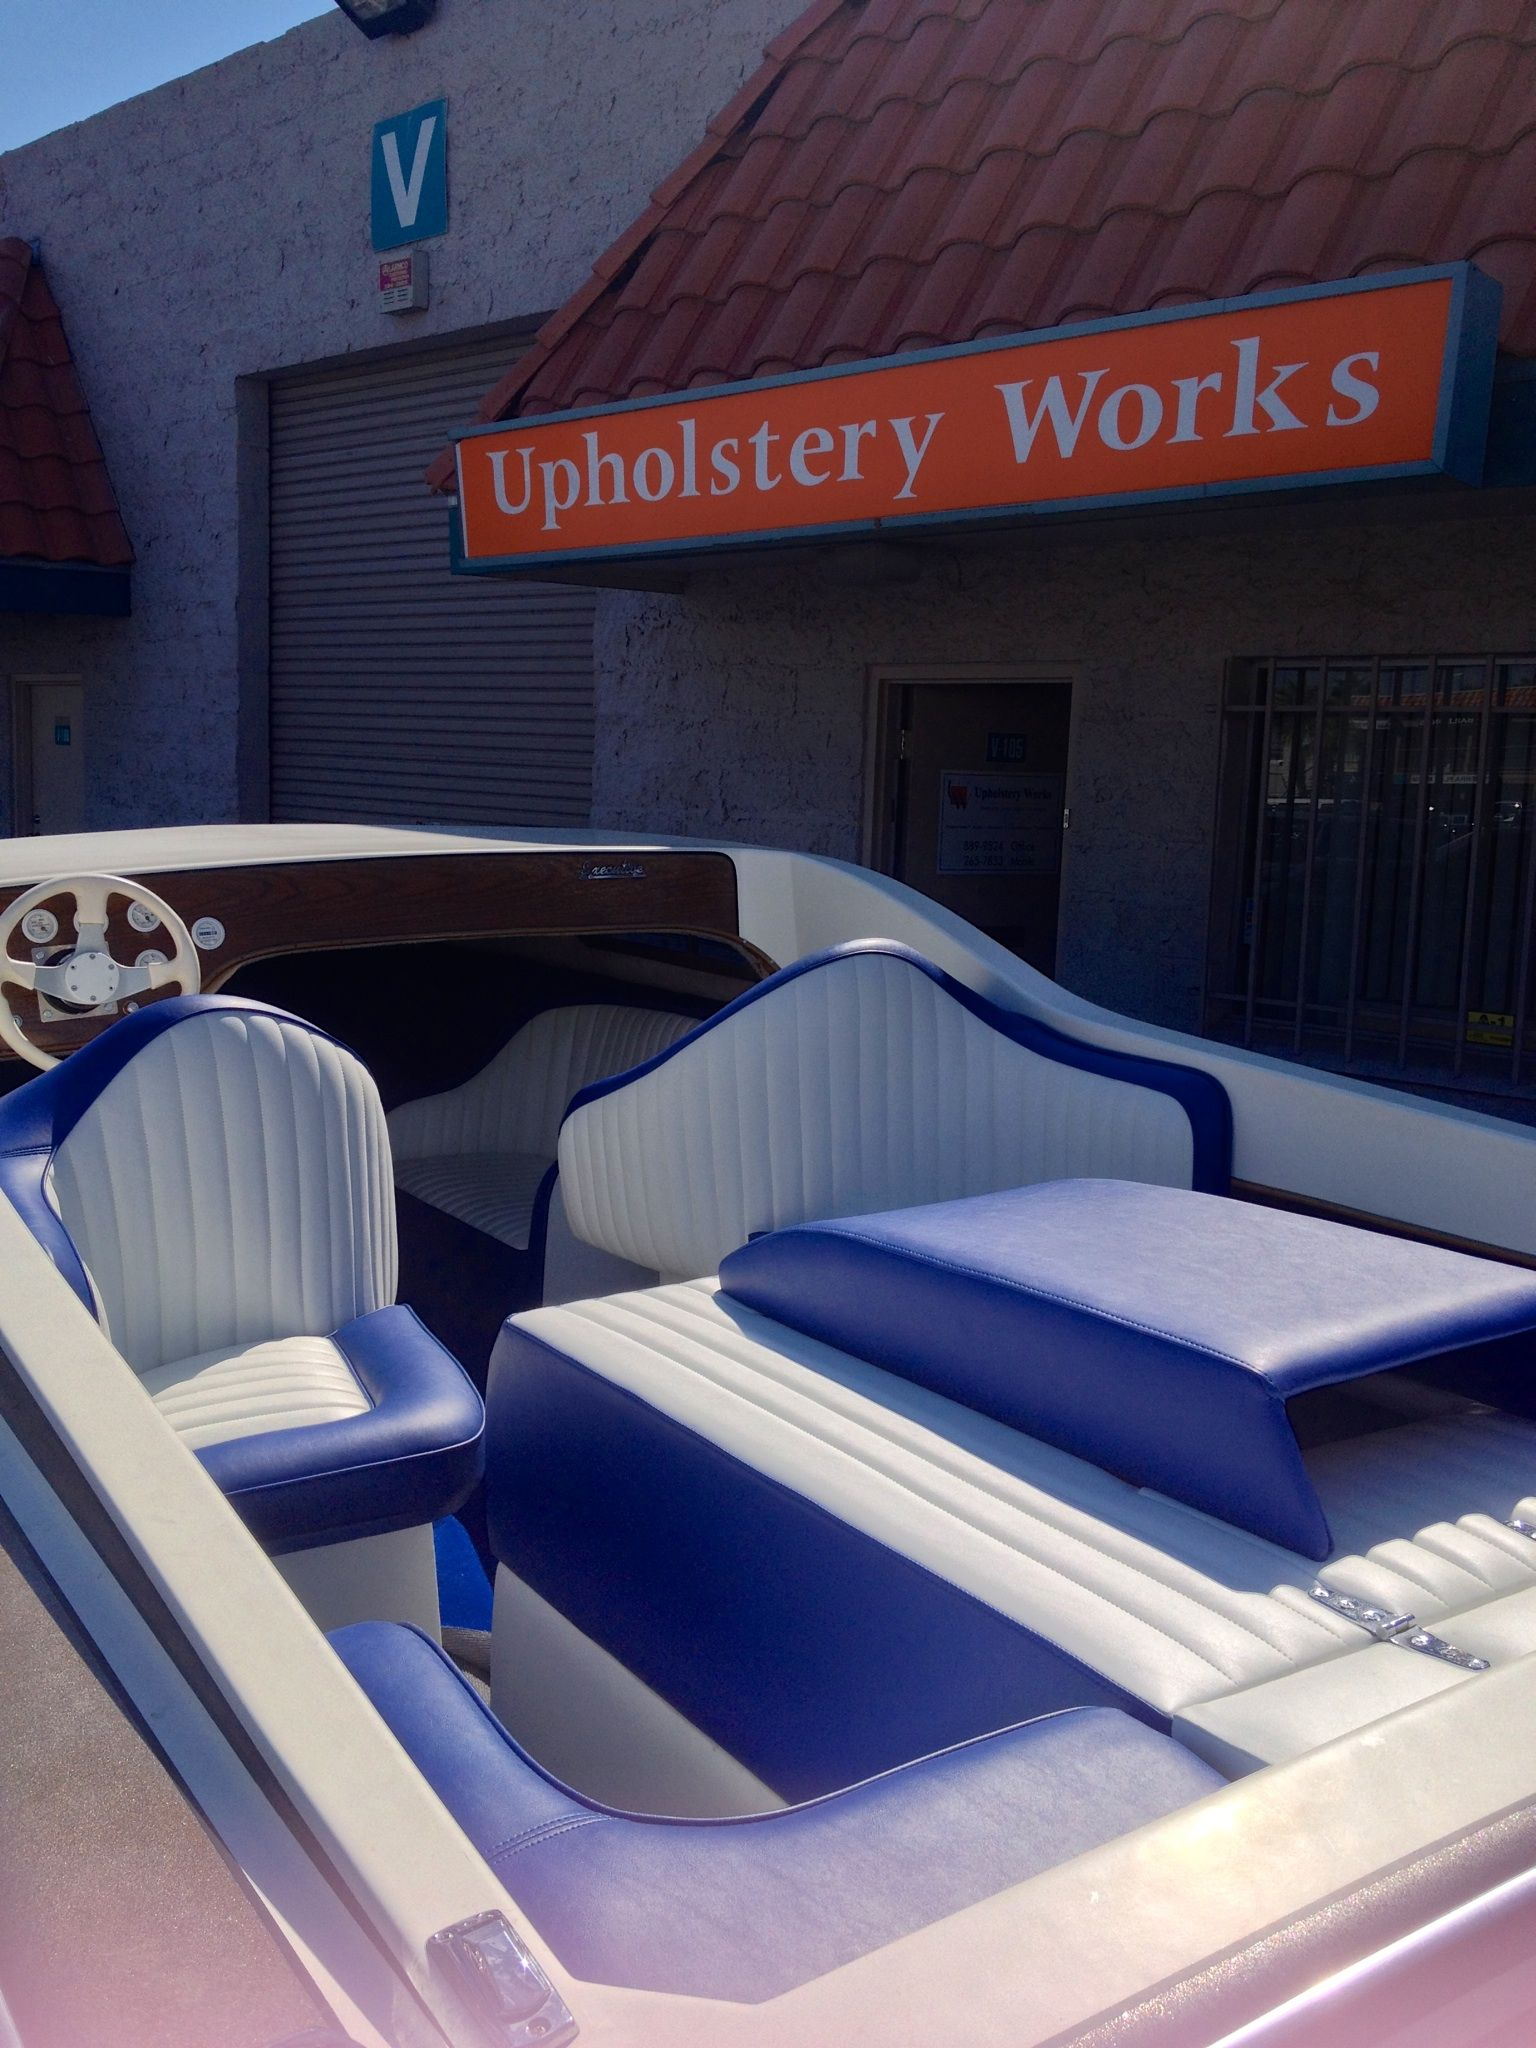 We Sell Foam In Northern Beaches To Suit Your Marine Application We Cut Foam To Any Size And Customized For Your Marine Upholstery In Northern Beaches